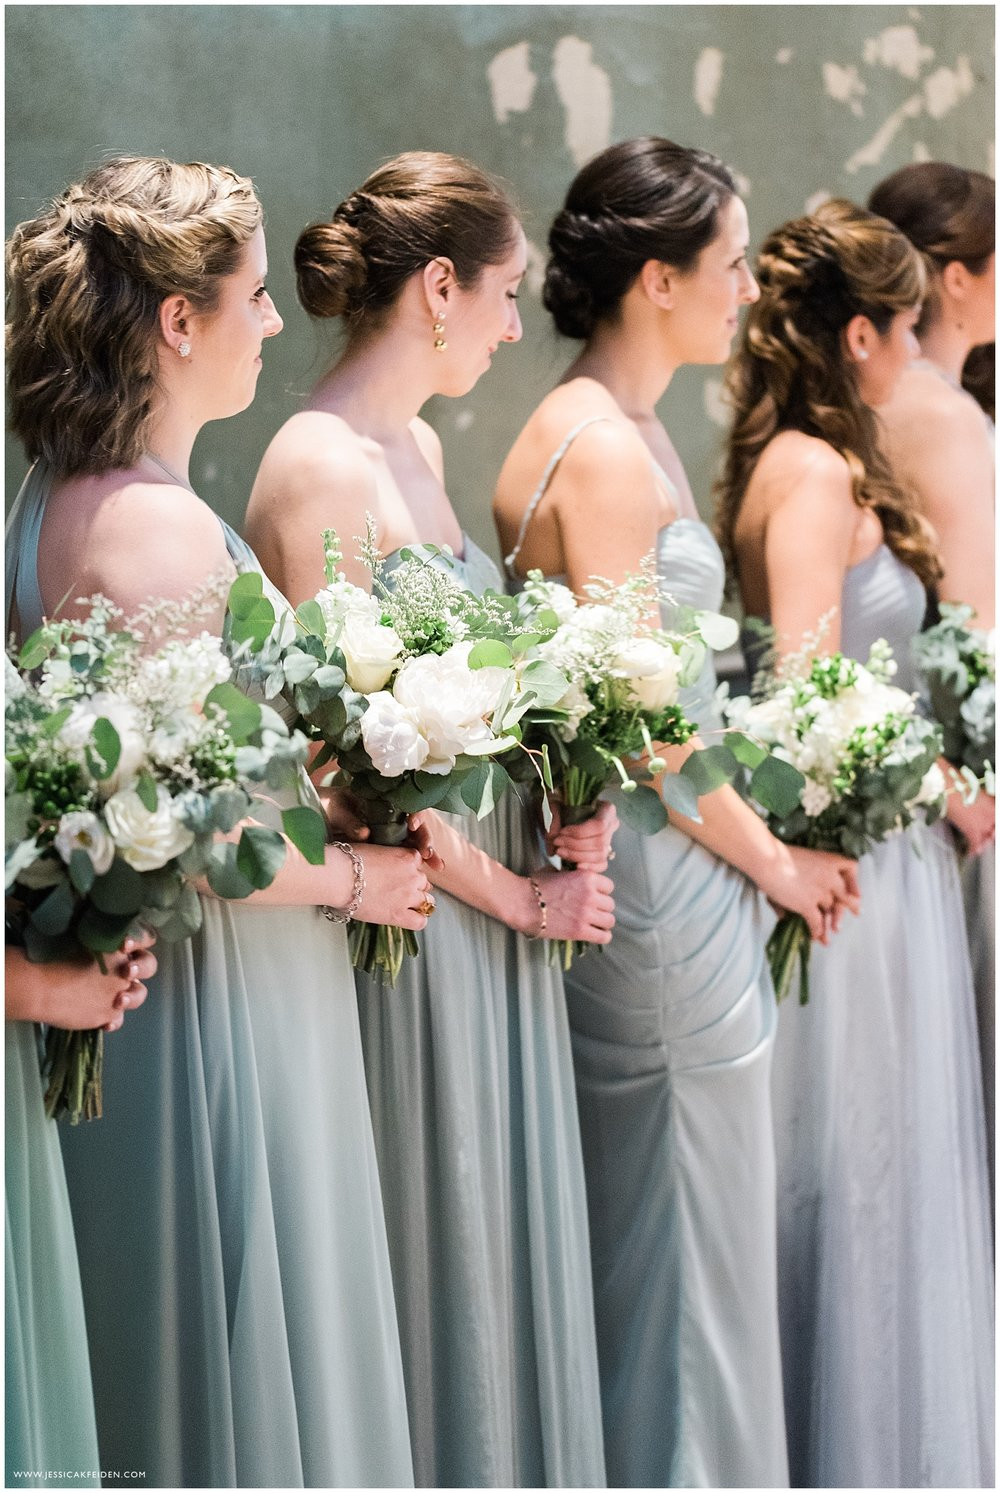 Jessica K Feiden Photography_Margaux+Tim's Irondale Center Brooklyn Wedding_0027.jpg